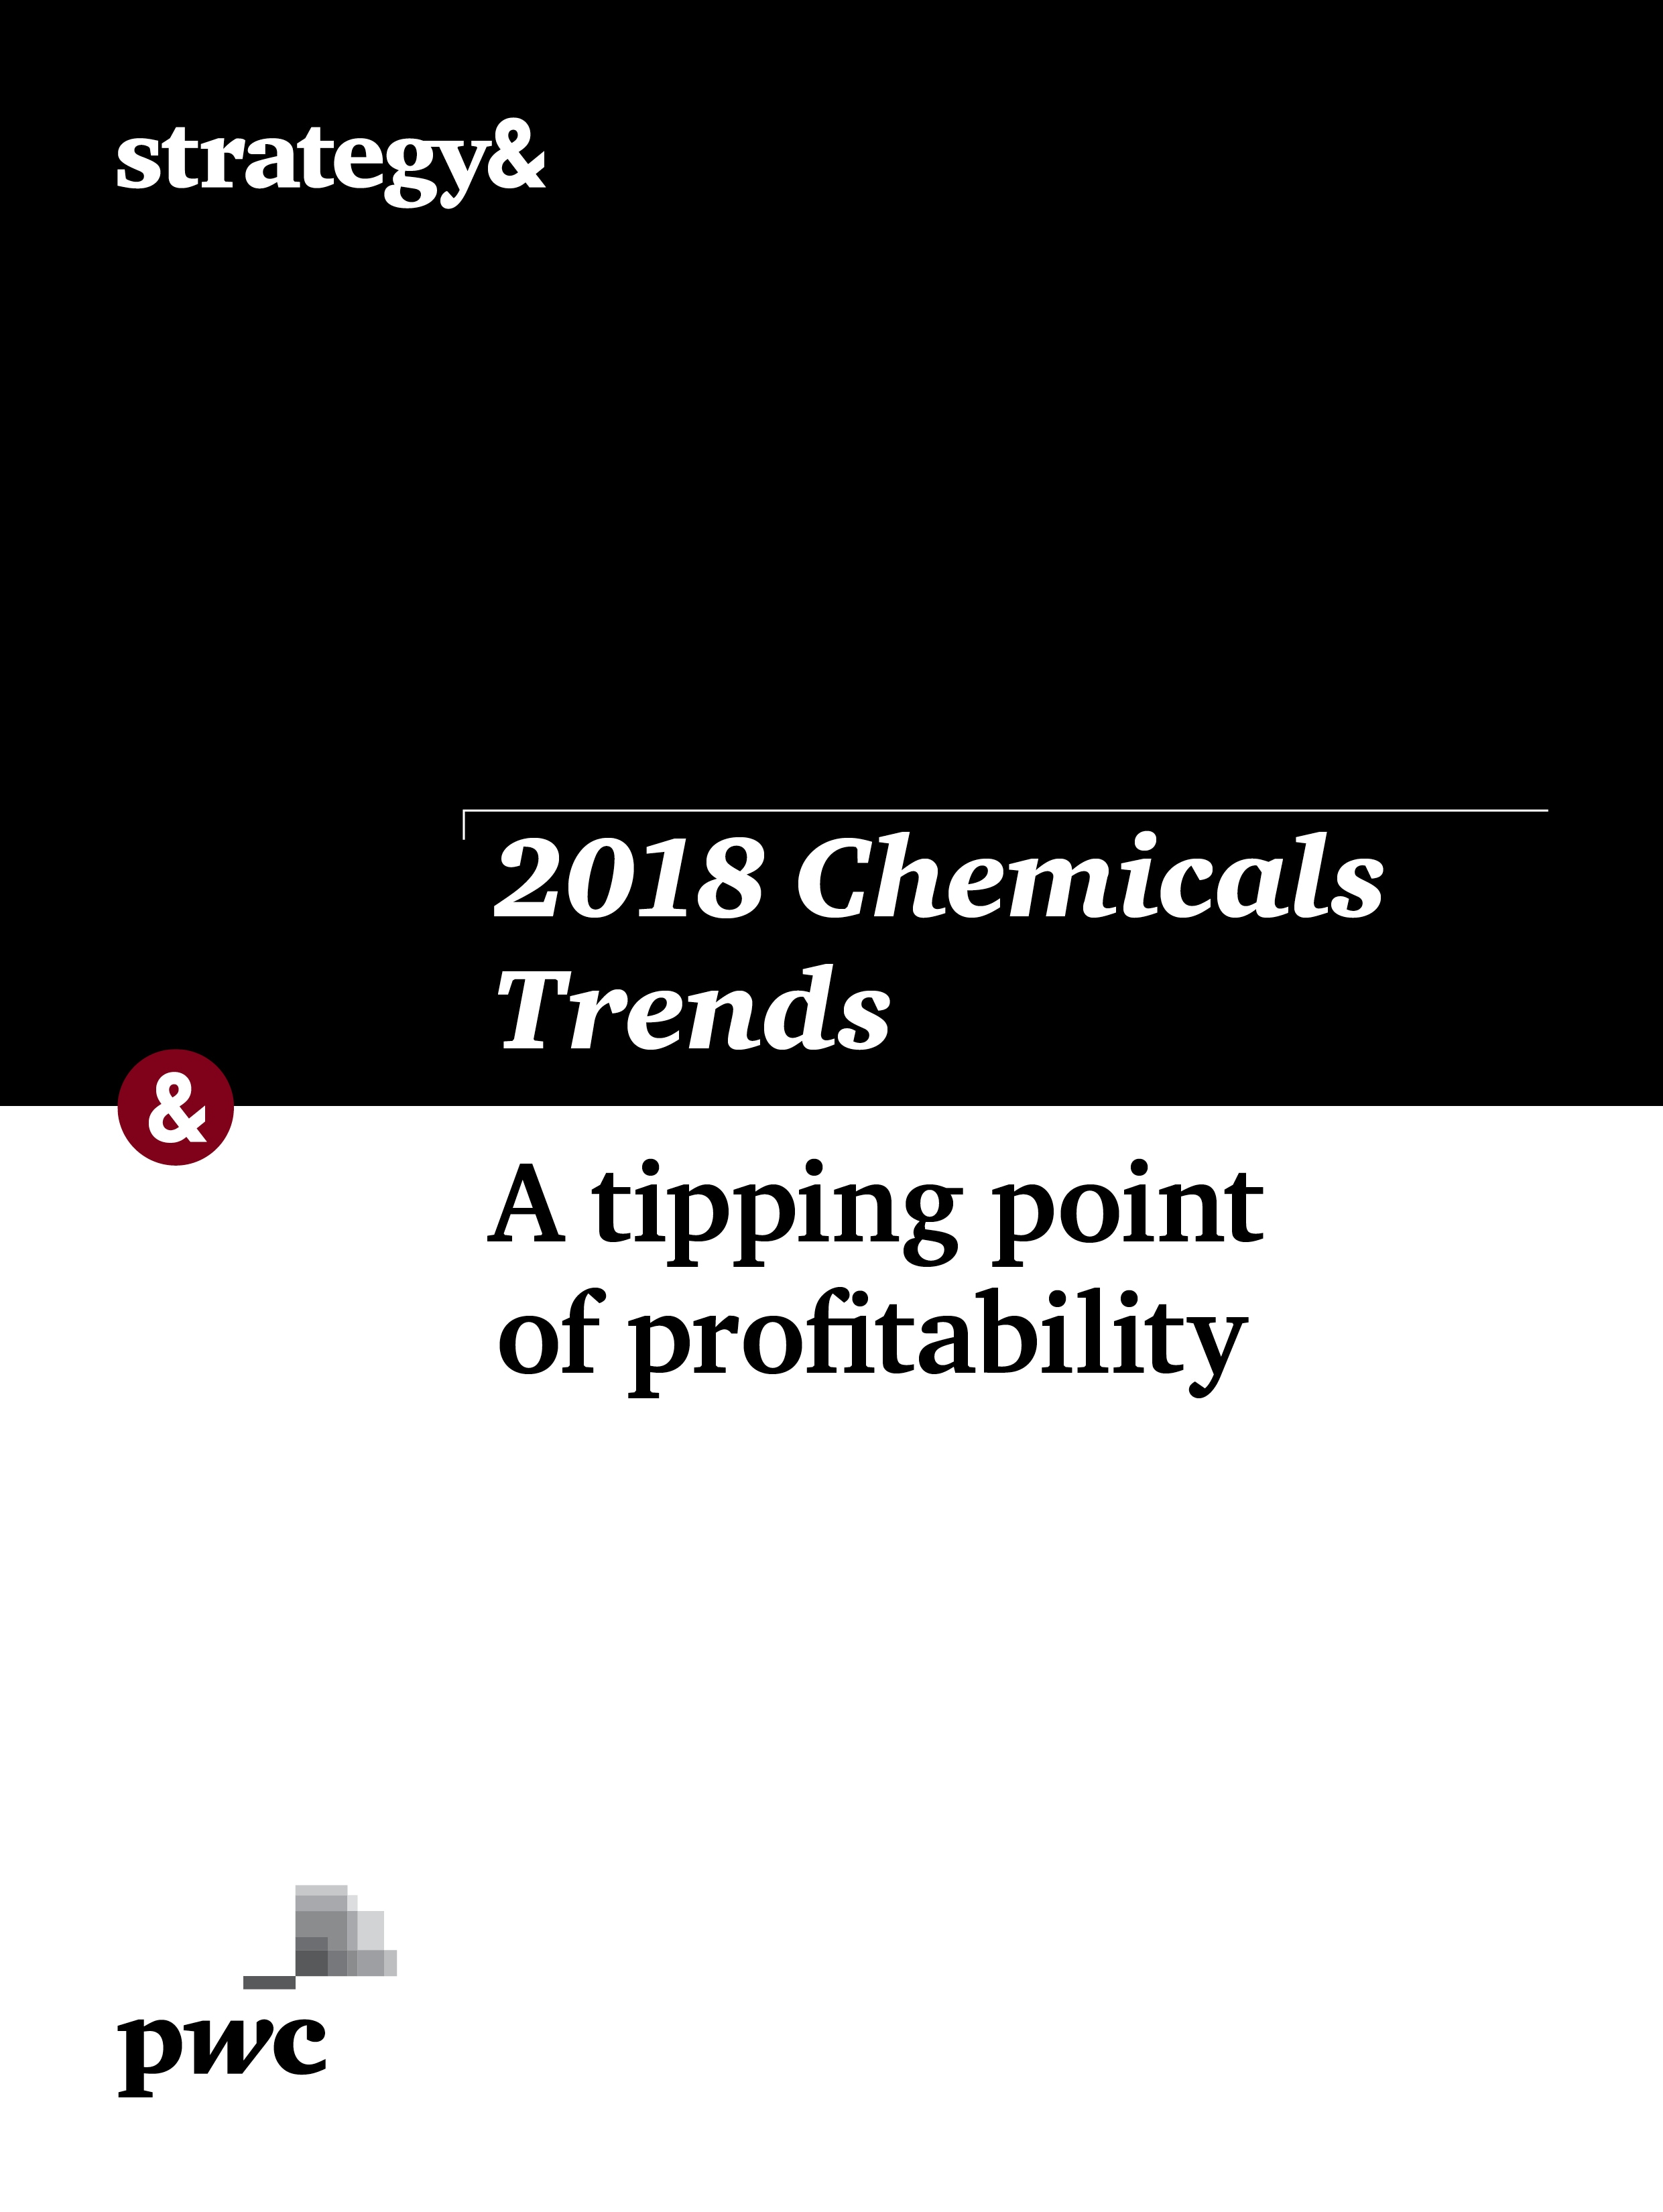 Chemicals: Energy, utilities & resources: Industries: PwC